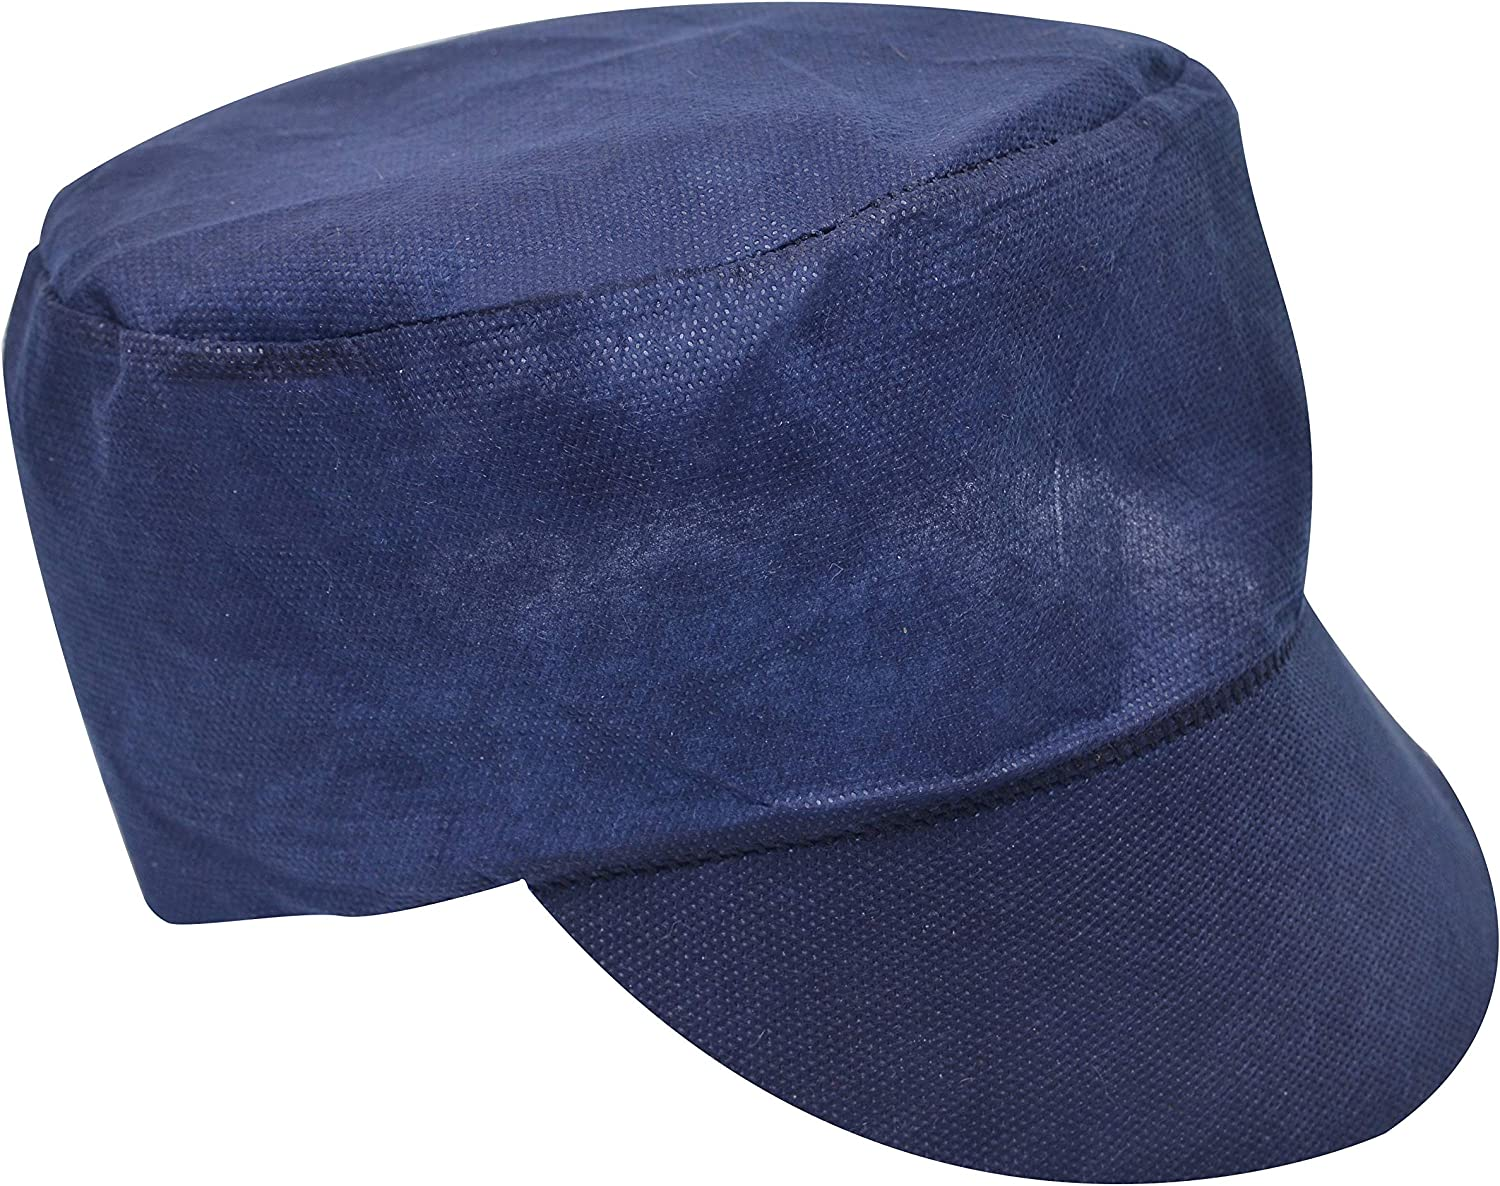 ABC Pack & Supply Polypropylene SafetyPeaked Caps. Unisex Disposable Hair Protection